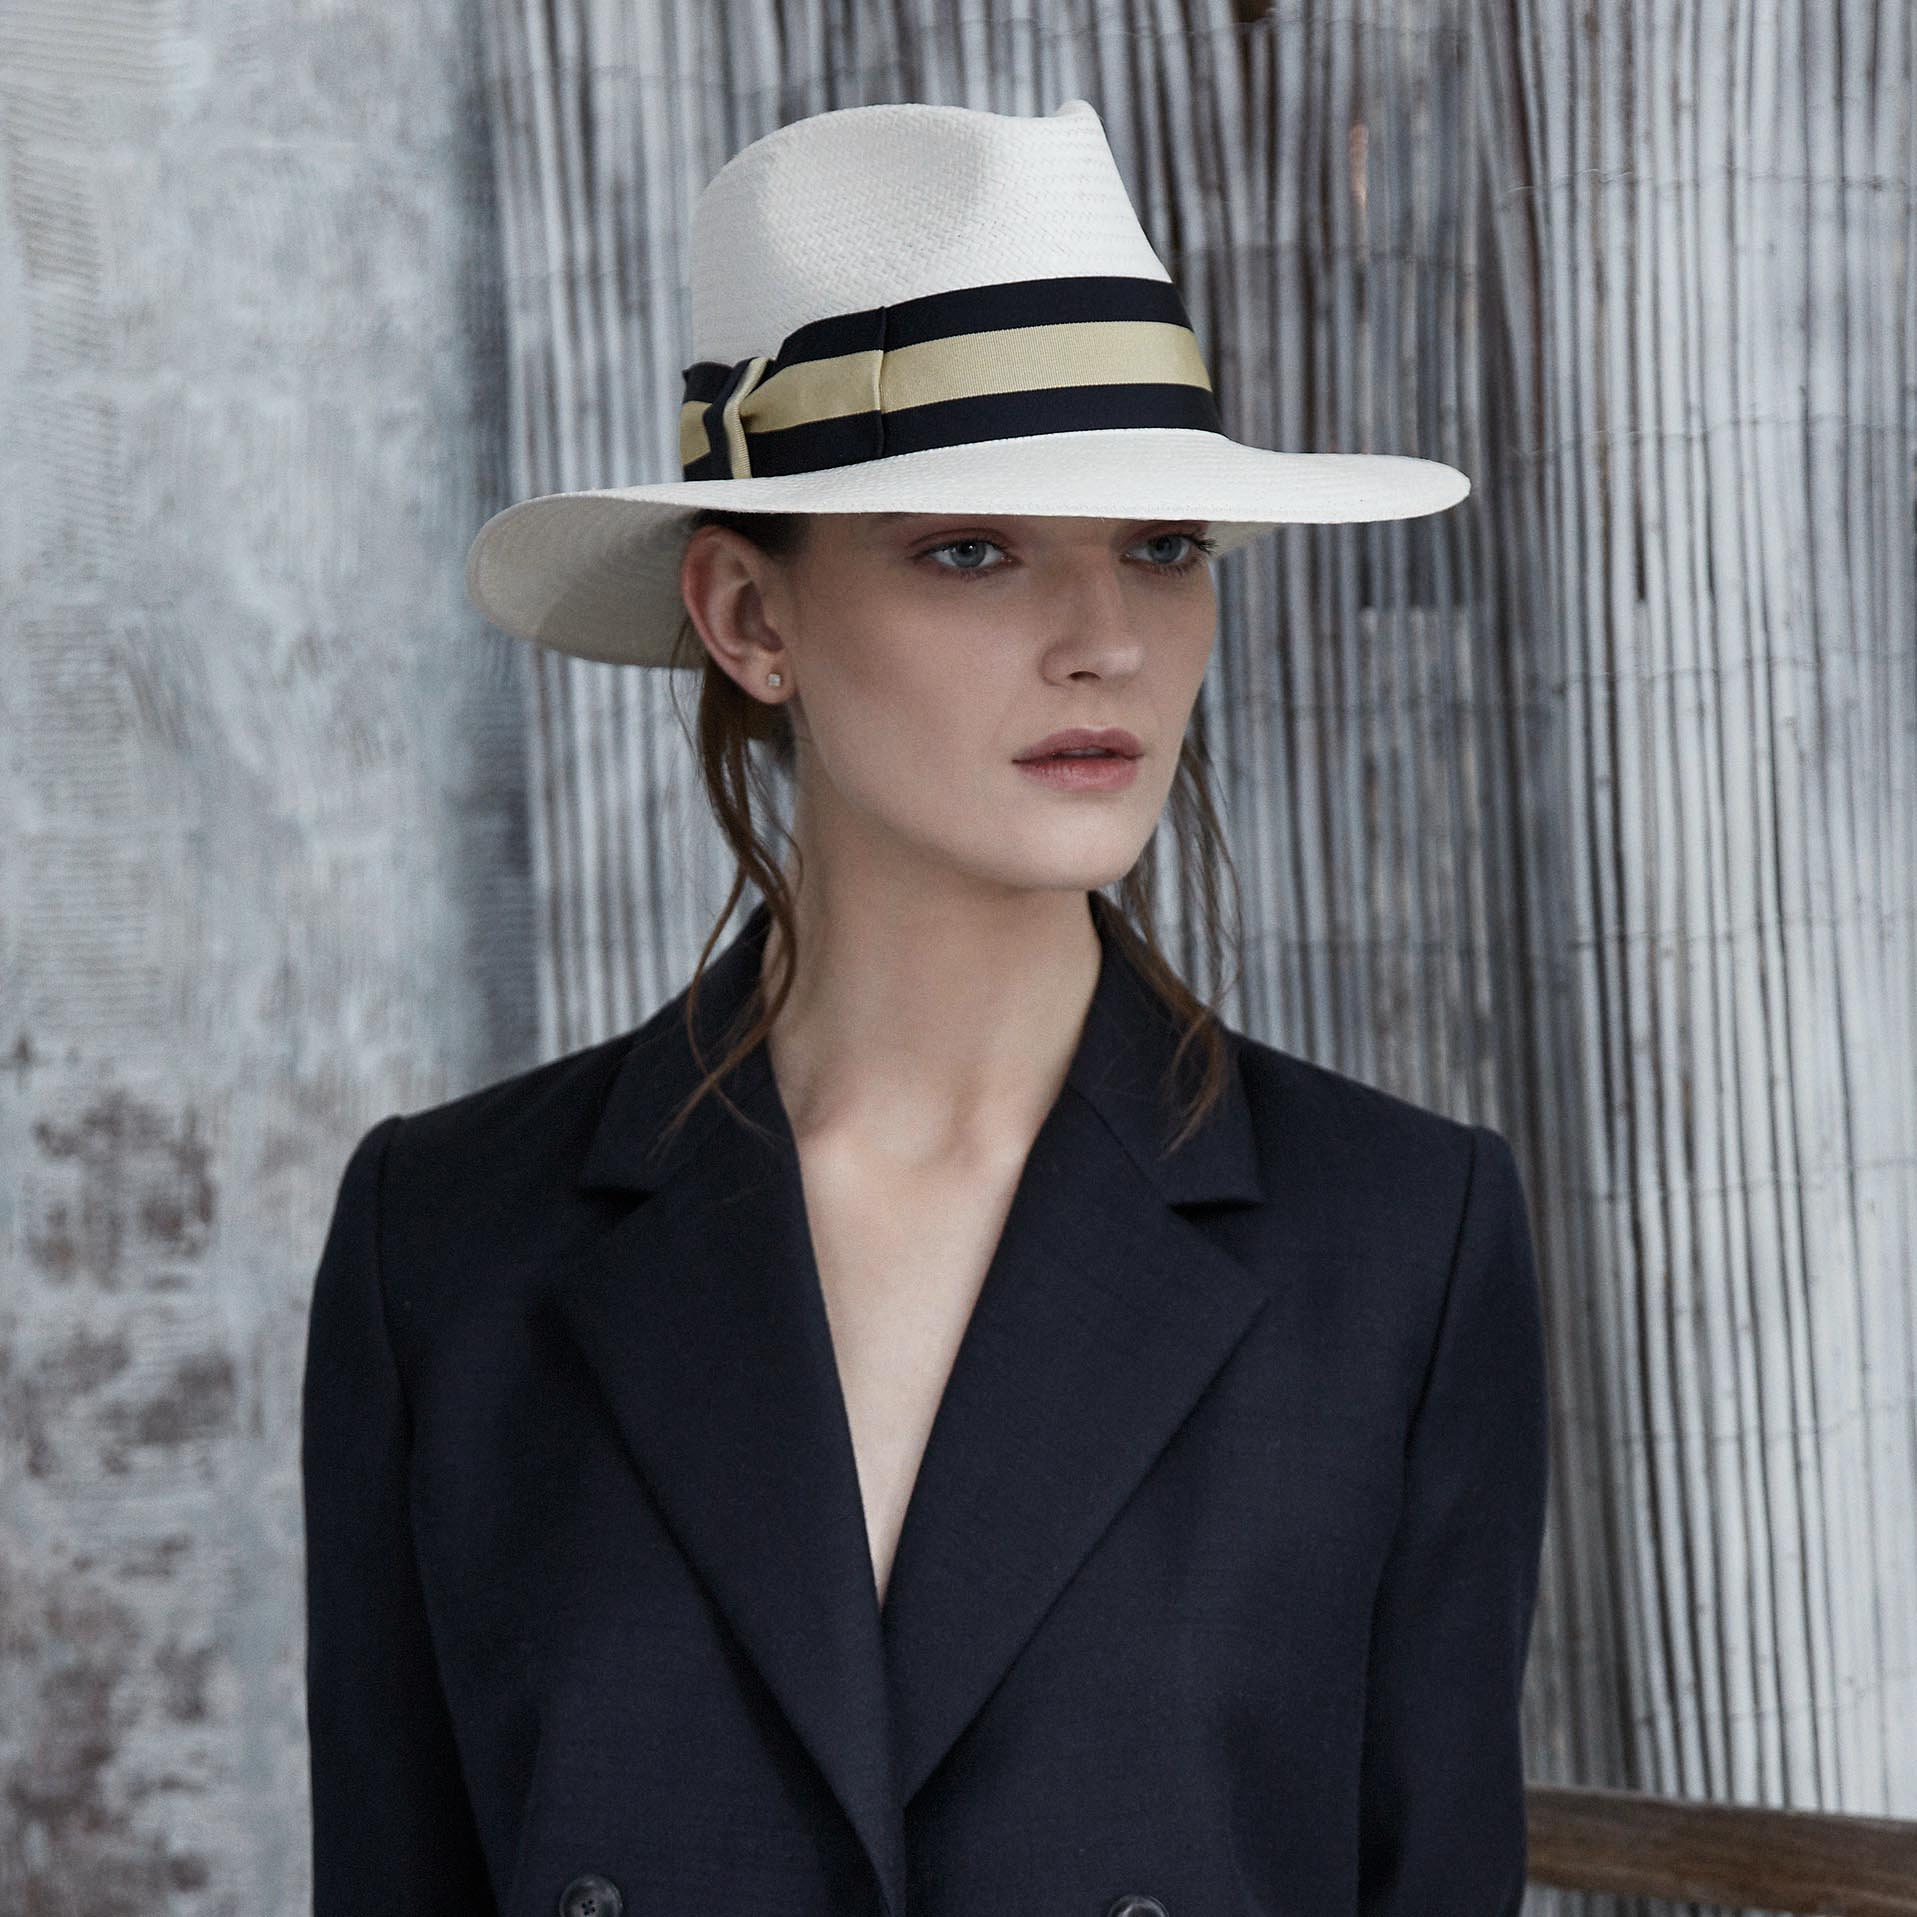 Peacehaven striped Panama - Women's hats - Lock & Co. Hatters London UK